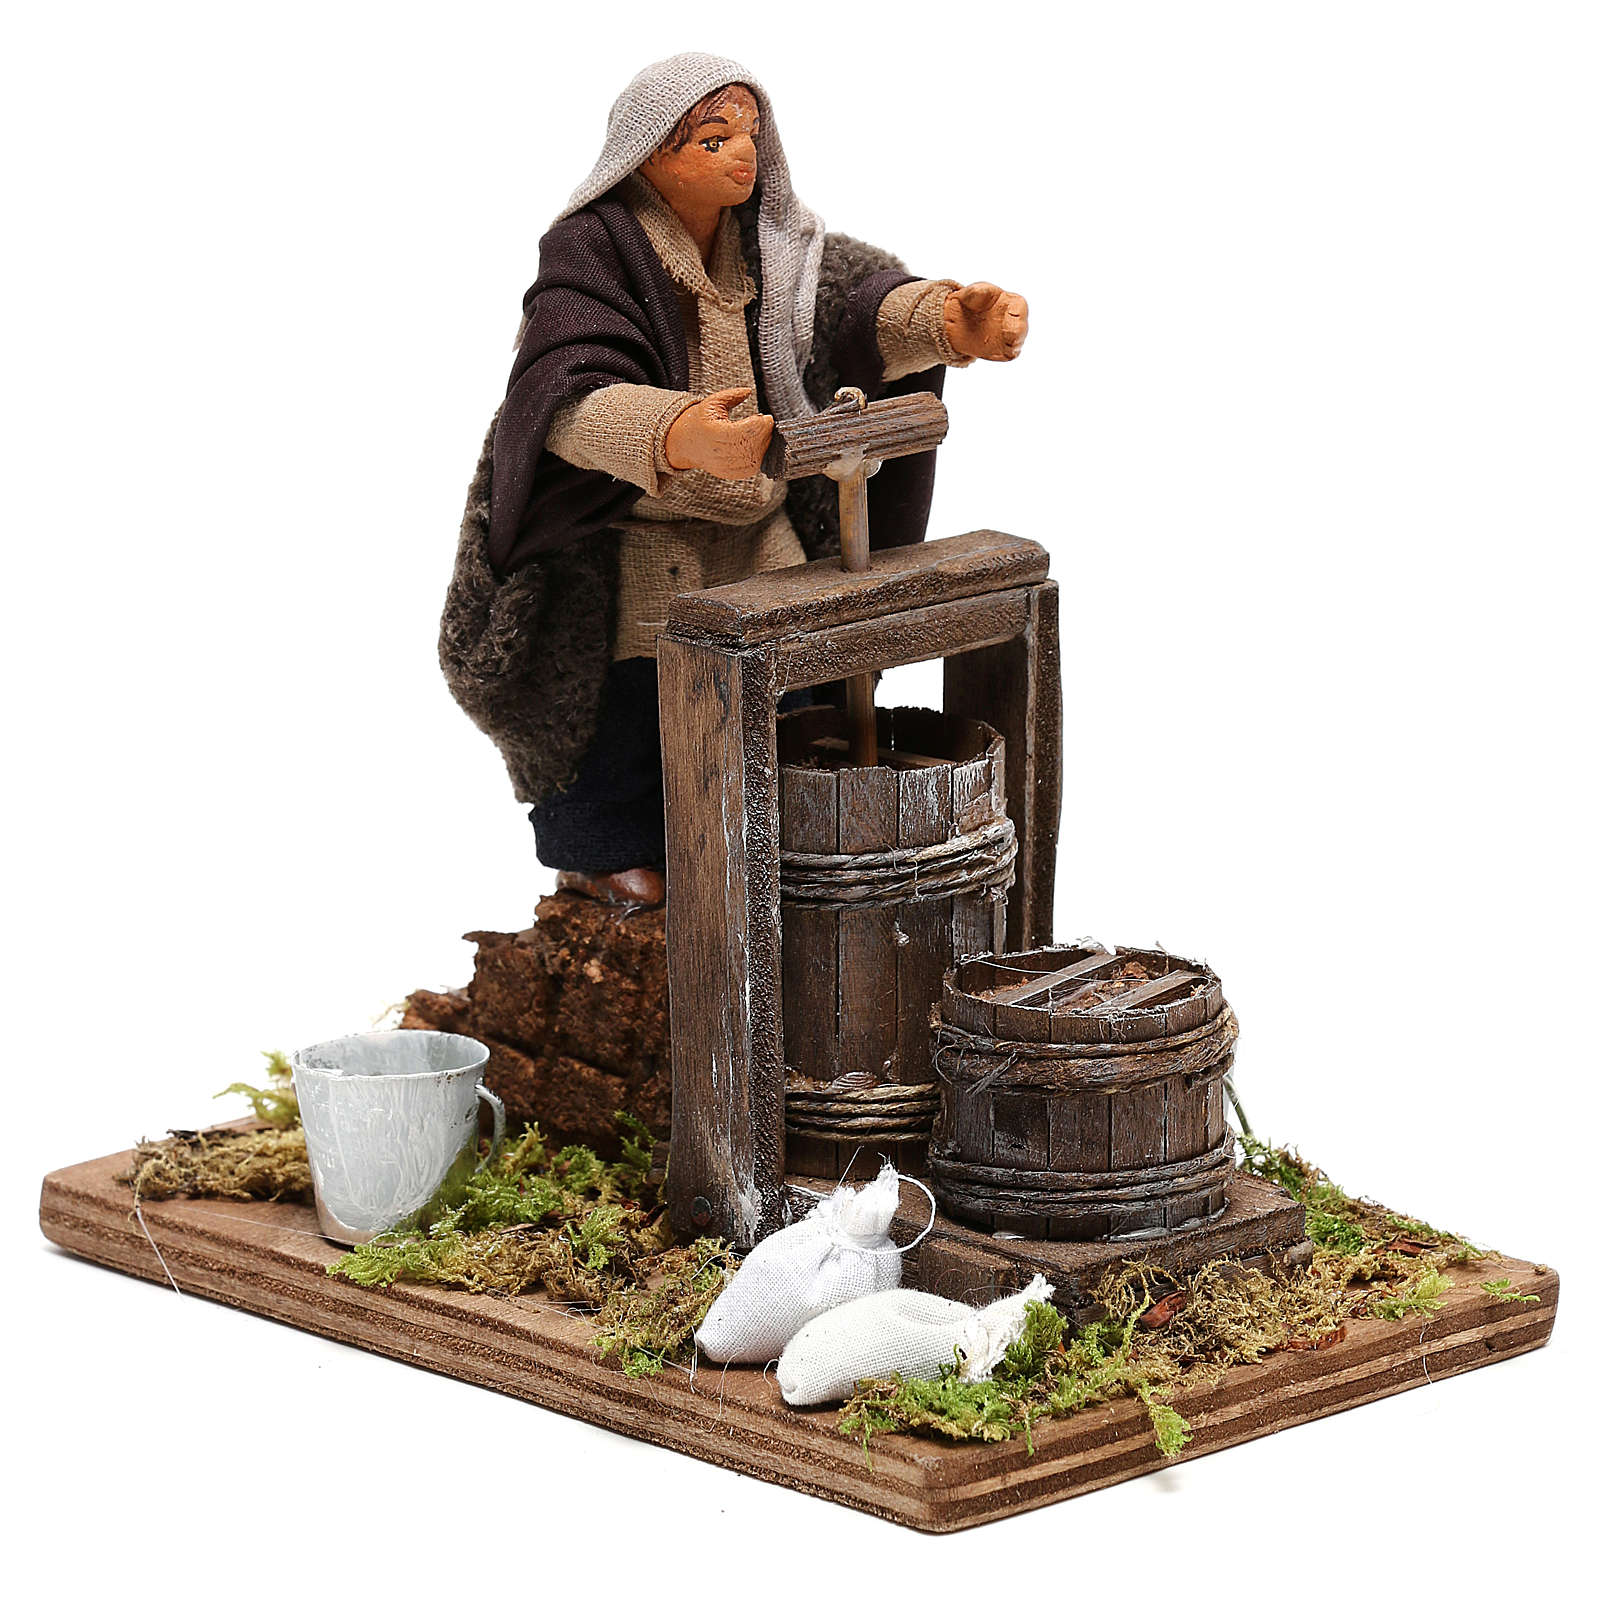 Neapolitan Nativity figurine Man making butter with tools 14cm 4